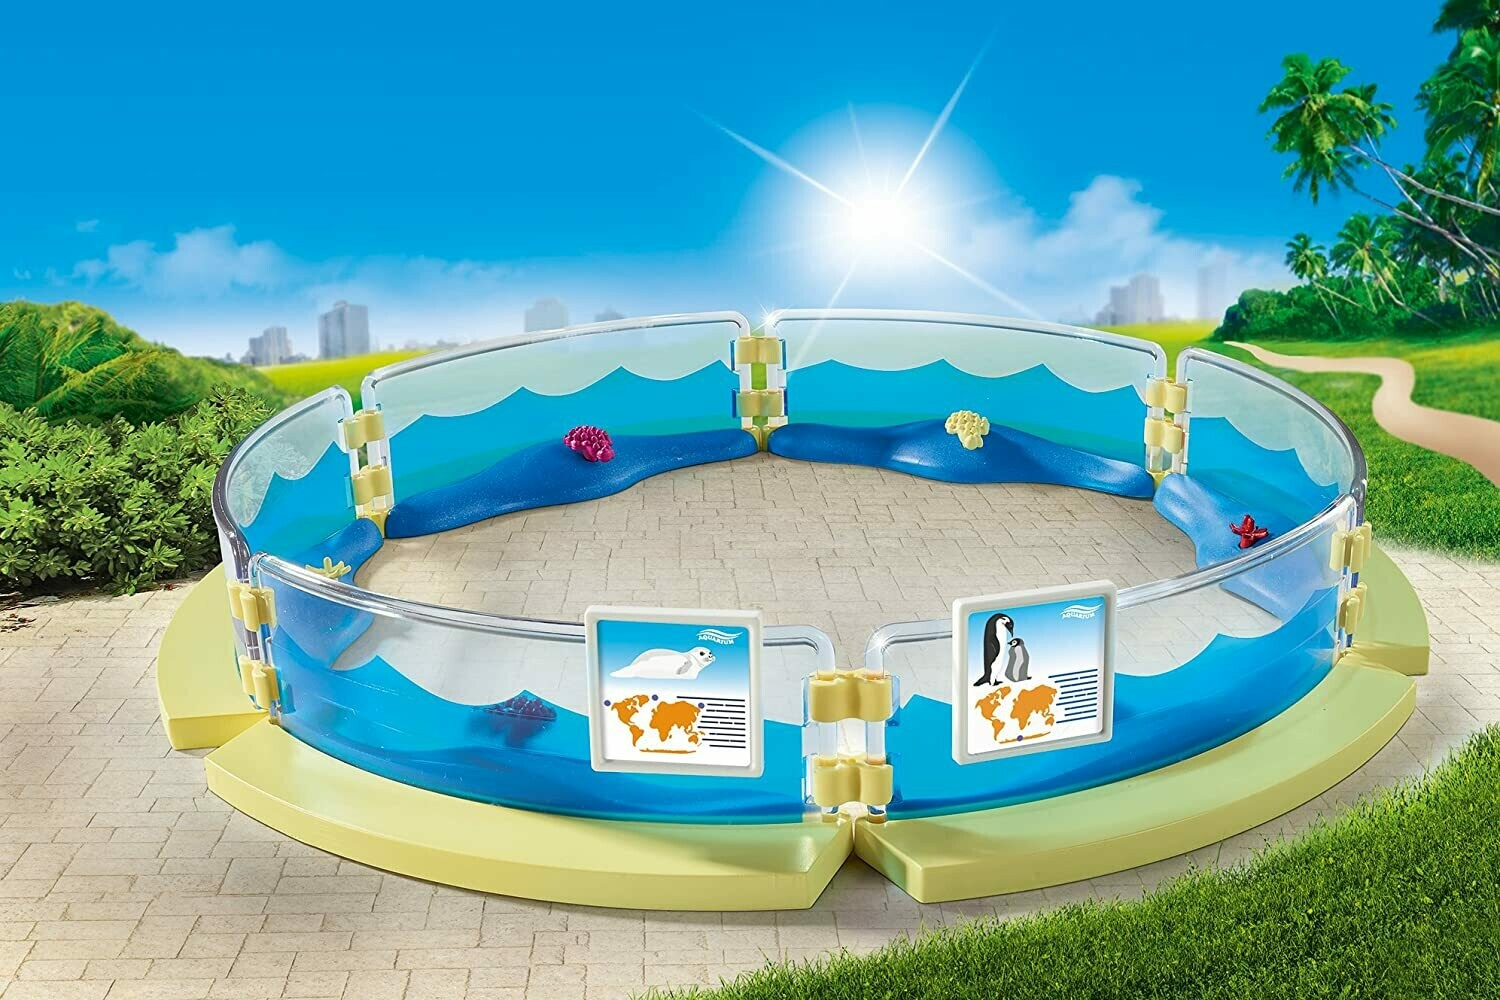 Playmobil: Aquarium Enclosure (Discontinued)